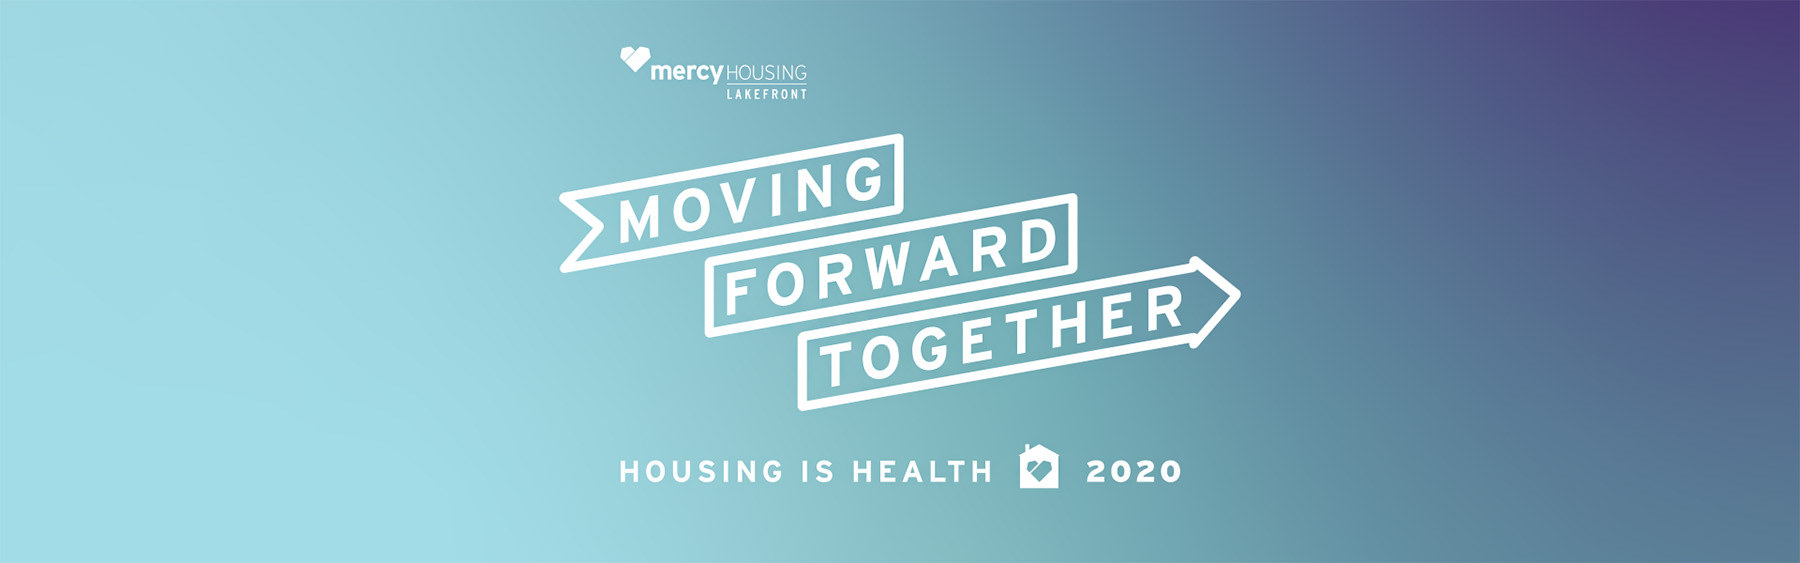 Mercy Housing Lakefront Moving Forward Together 2020